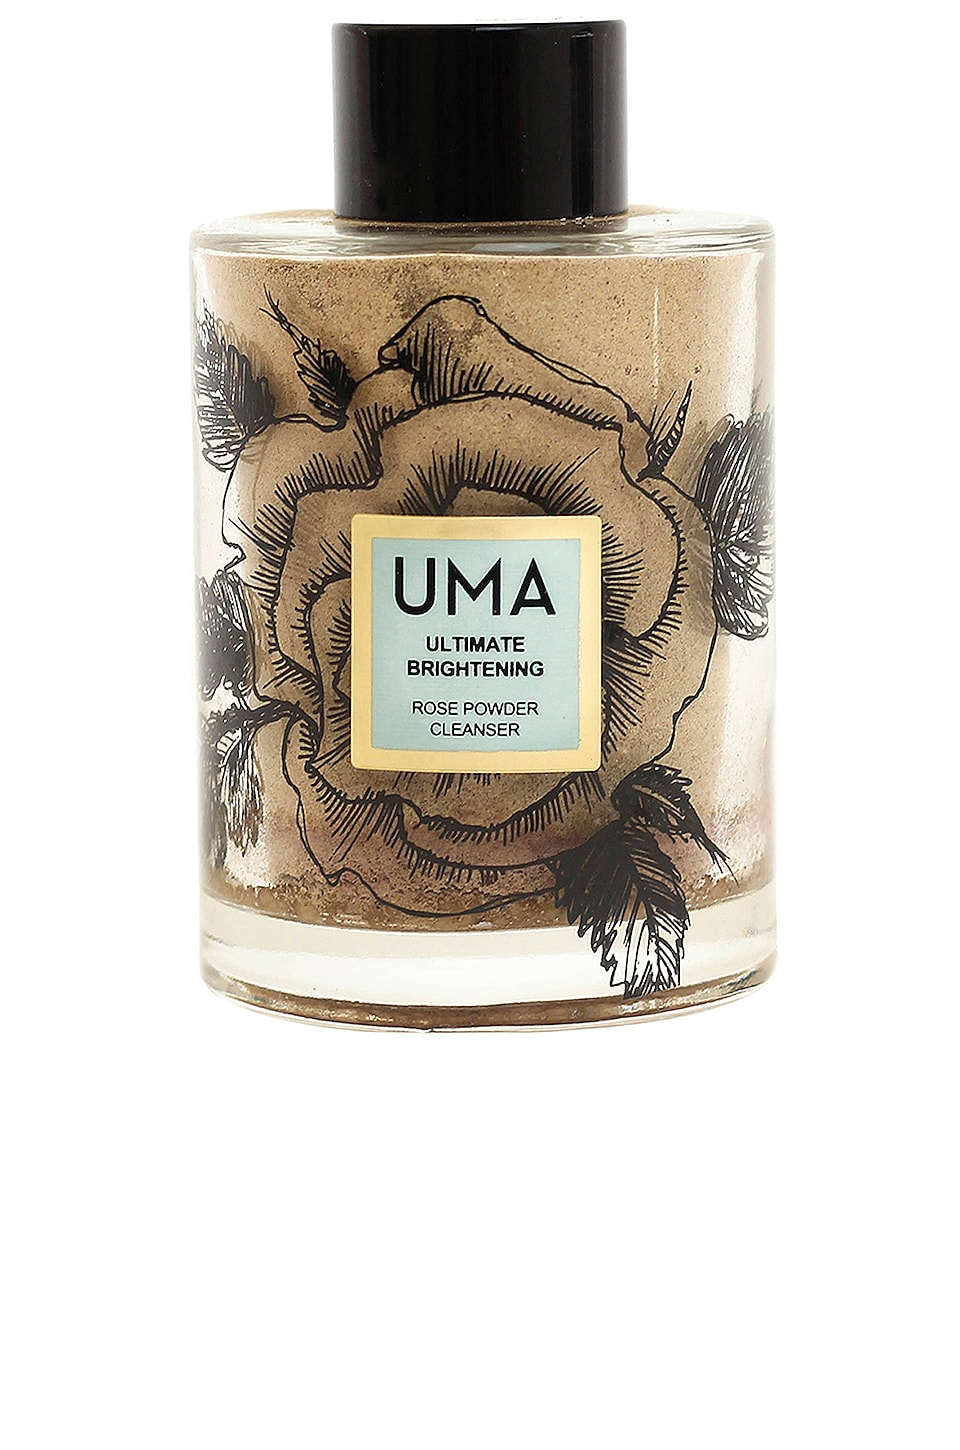 UMA Ultimate Brightening Rose Powder Cleanser